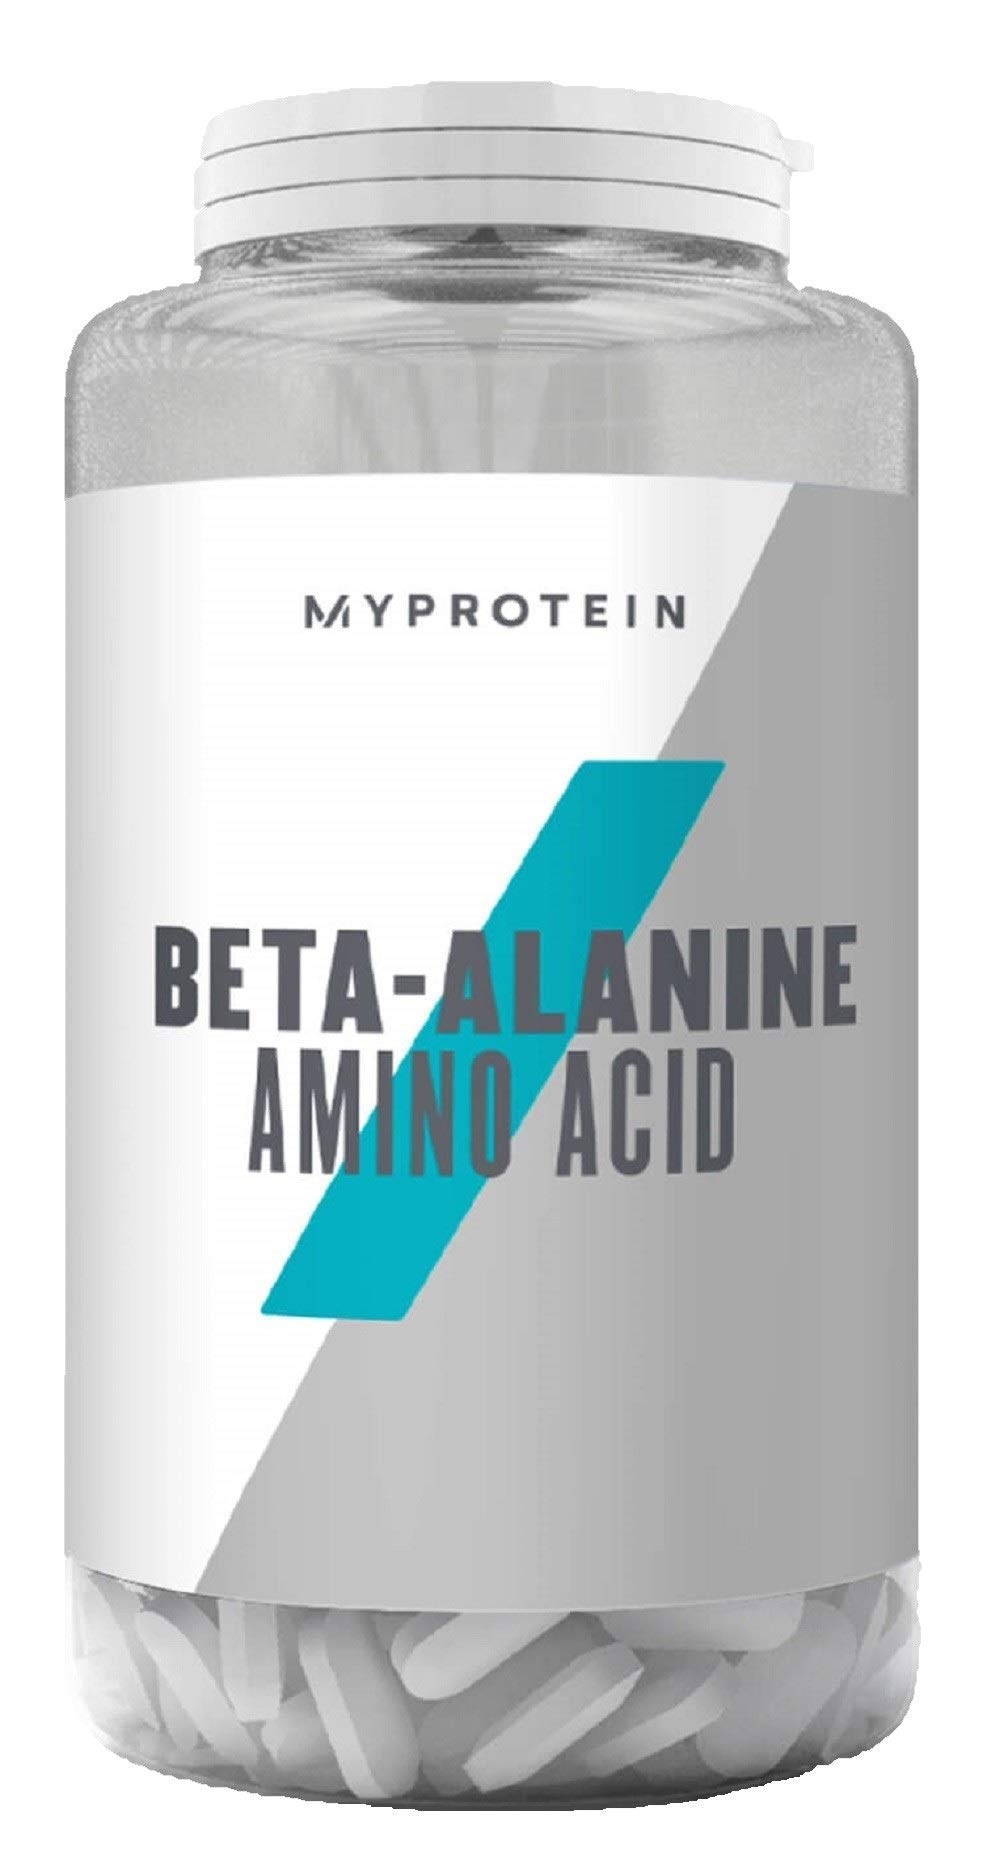 My Protein Beta Alanine Amino Acid Supplement, Pack of 90 Tablets